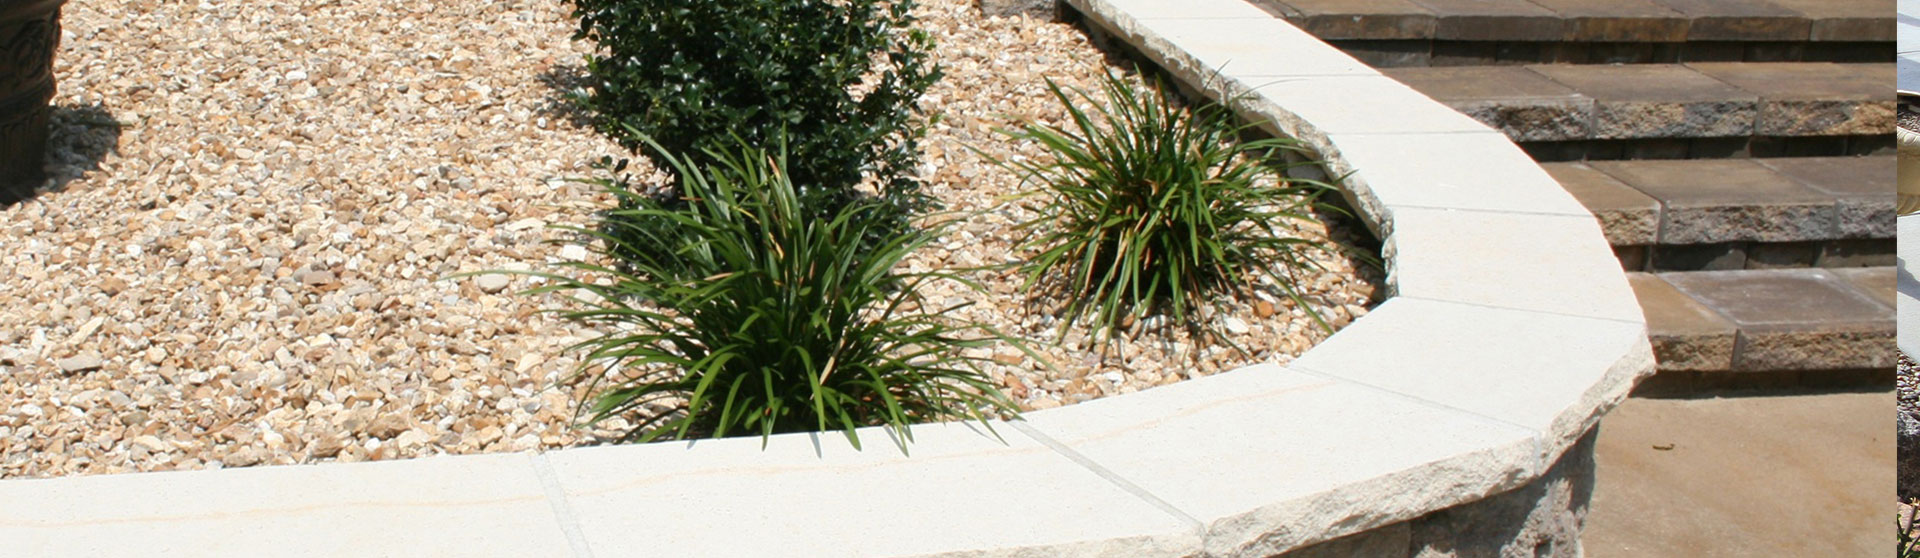 Landscape Stone Ground Cover : Decorative ground covers carson stone and supply